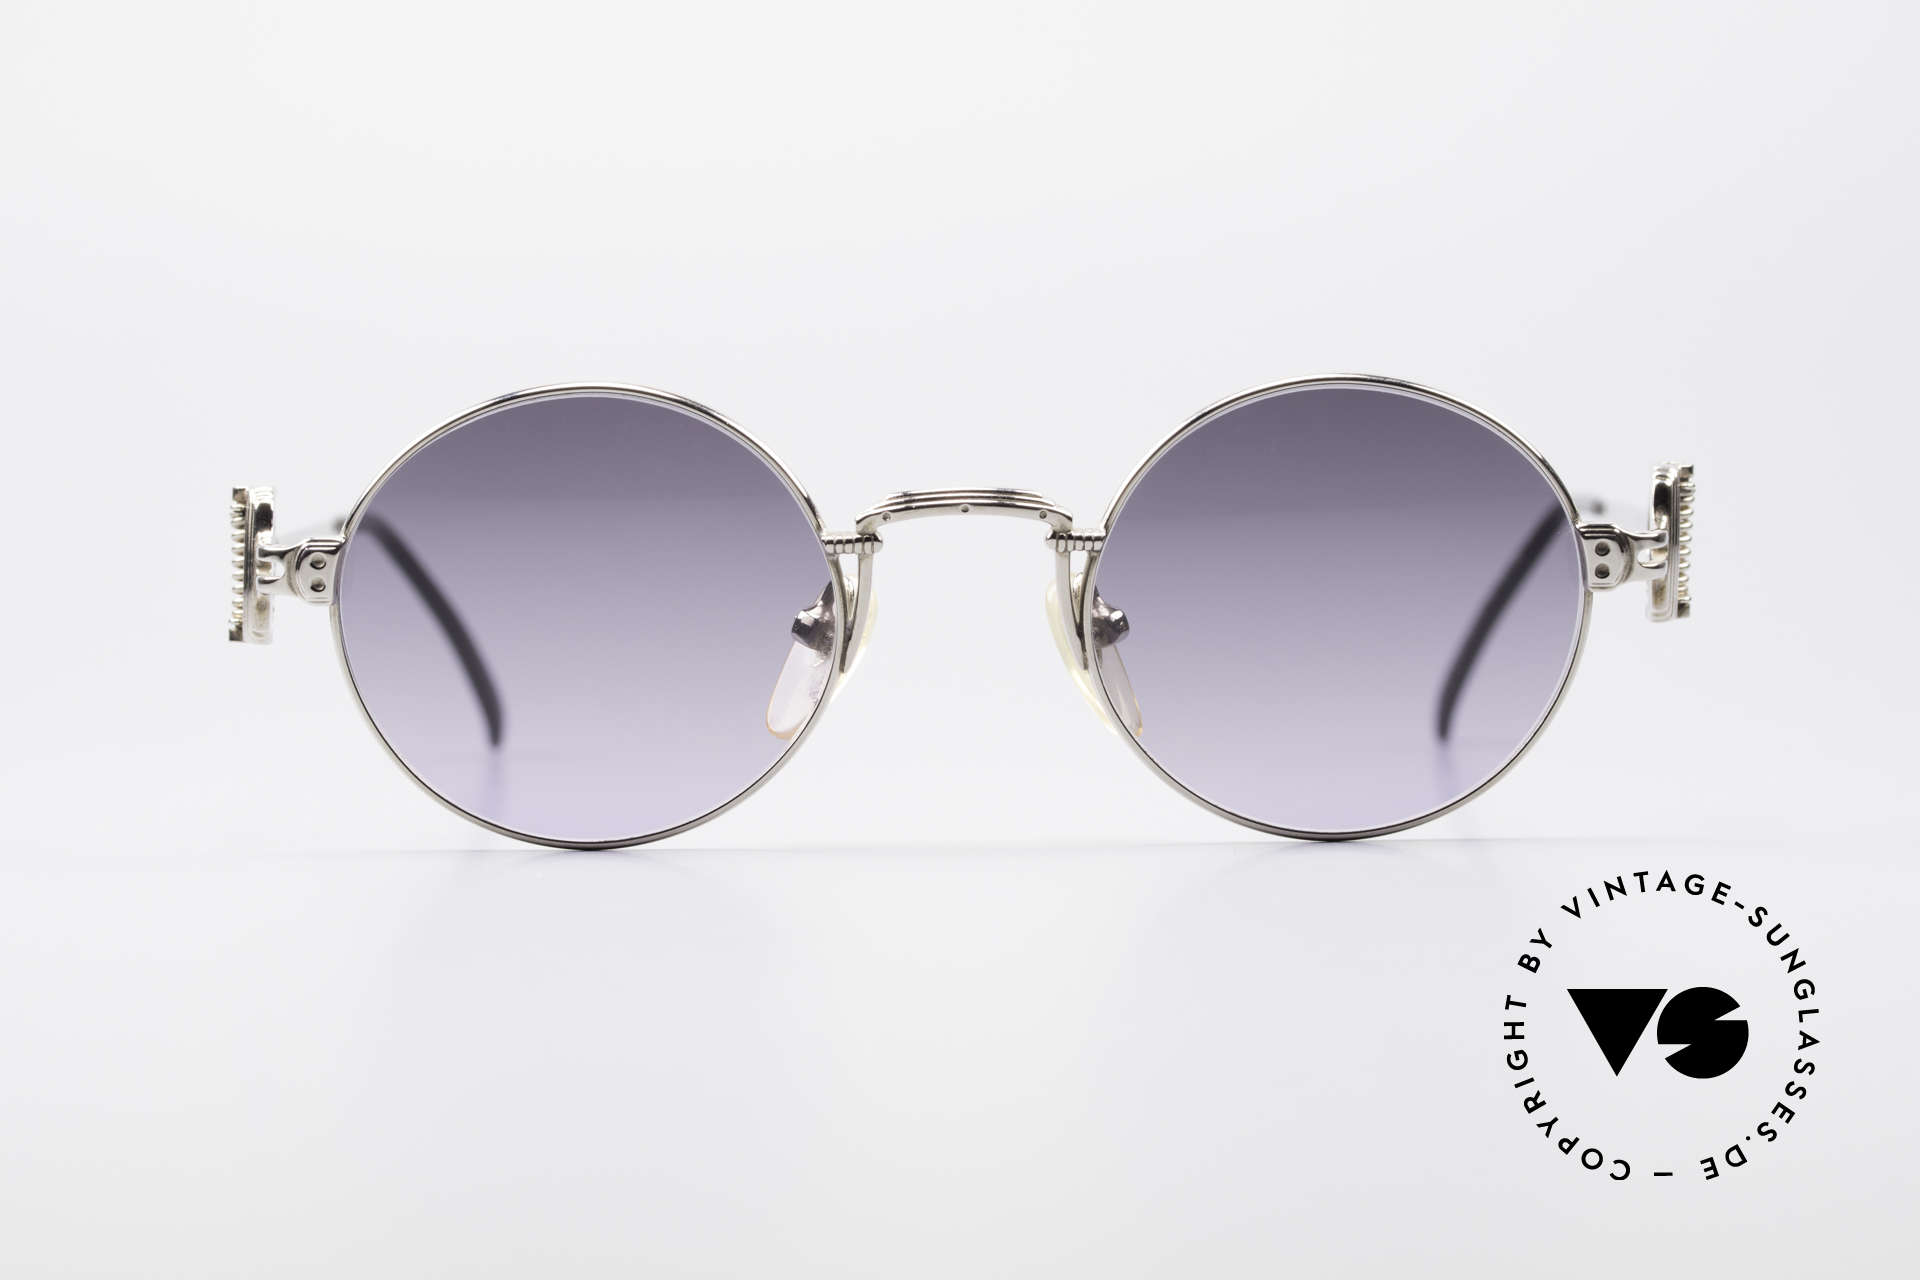 Jean Paul Gaultier 55-5106 Steampunk Sunglasses, lightweight frame with many fancy details (check pics!), Made for Men and Women